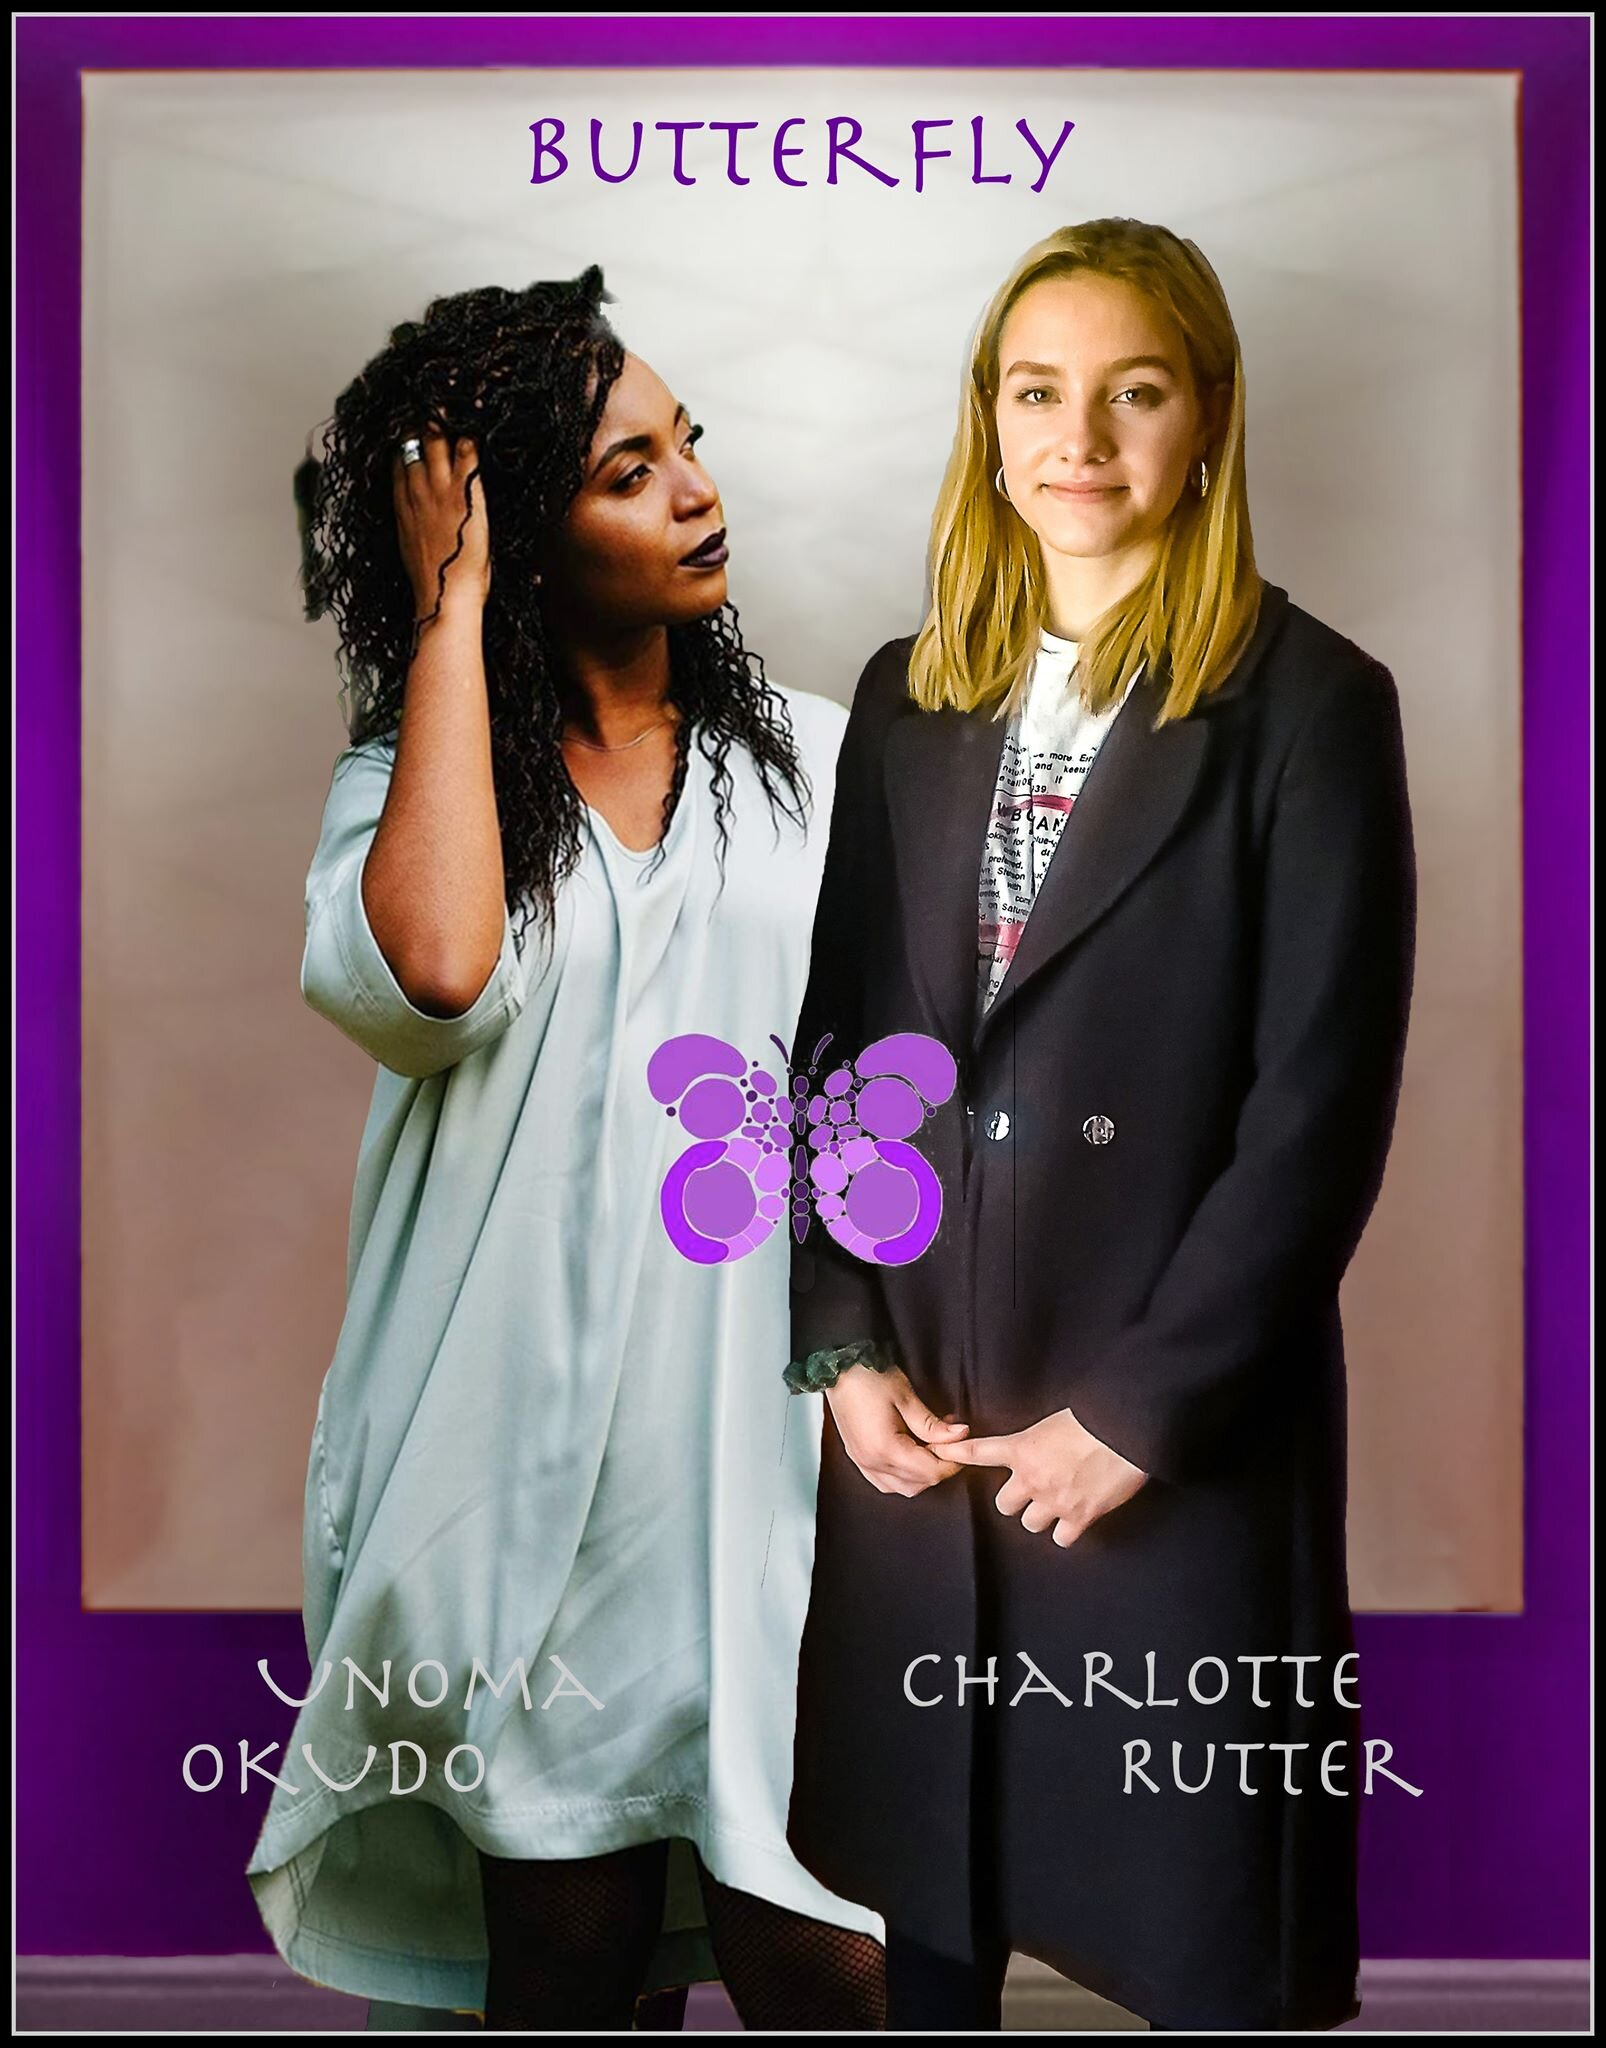 The artists - Charlotte Rutter and Unoma Okudo